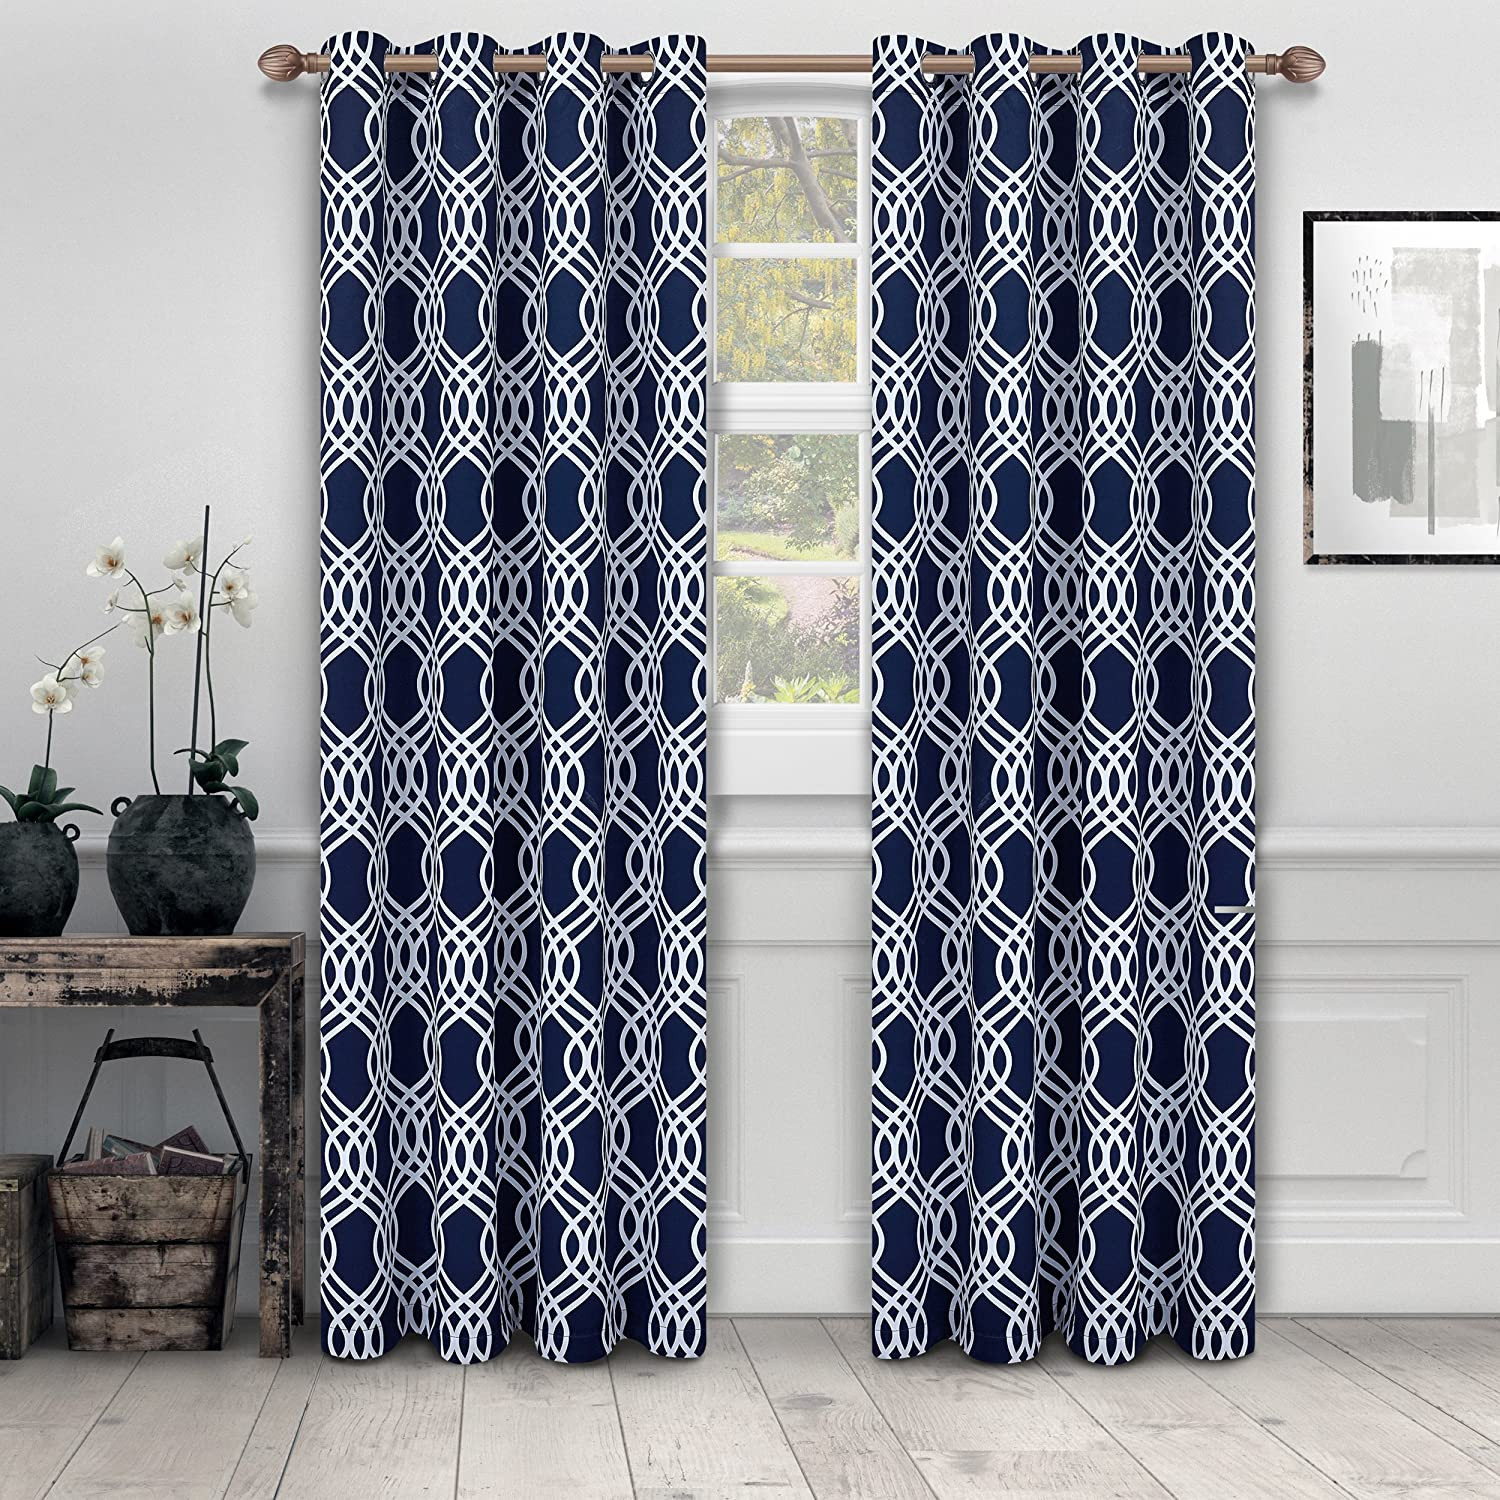 "Superior Ribbon Collection Quality Soft, Insulated, Thermal, Woven Blackout Grommet Printed Curtain Panel Pair (Set Of 2) 52"" x 108"" - Navy Blue"